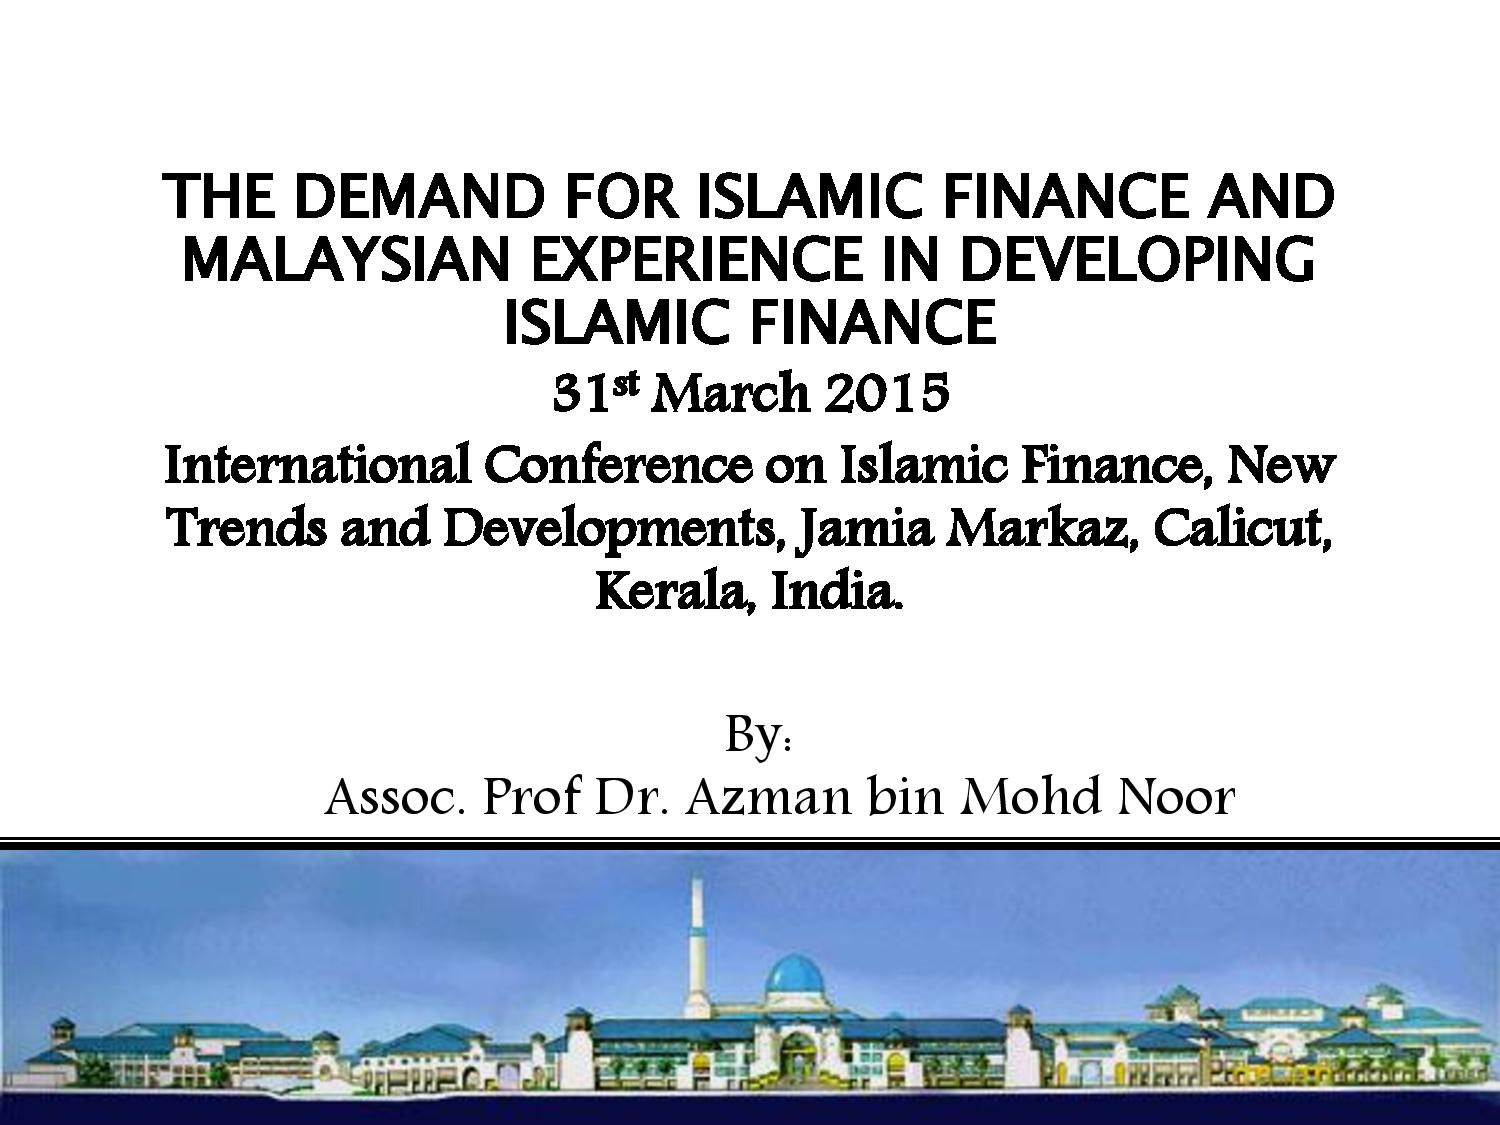 The demand for Islamic finance and Malaysian experience 30032015 CALICUT KERALA page 001 - The Demand Of Islamic Finance